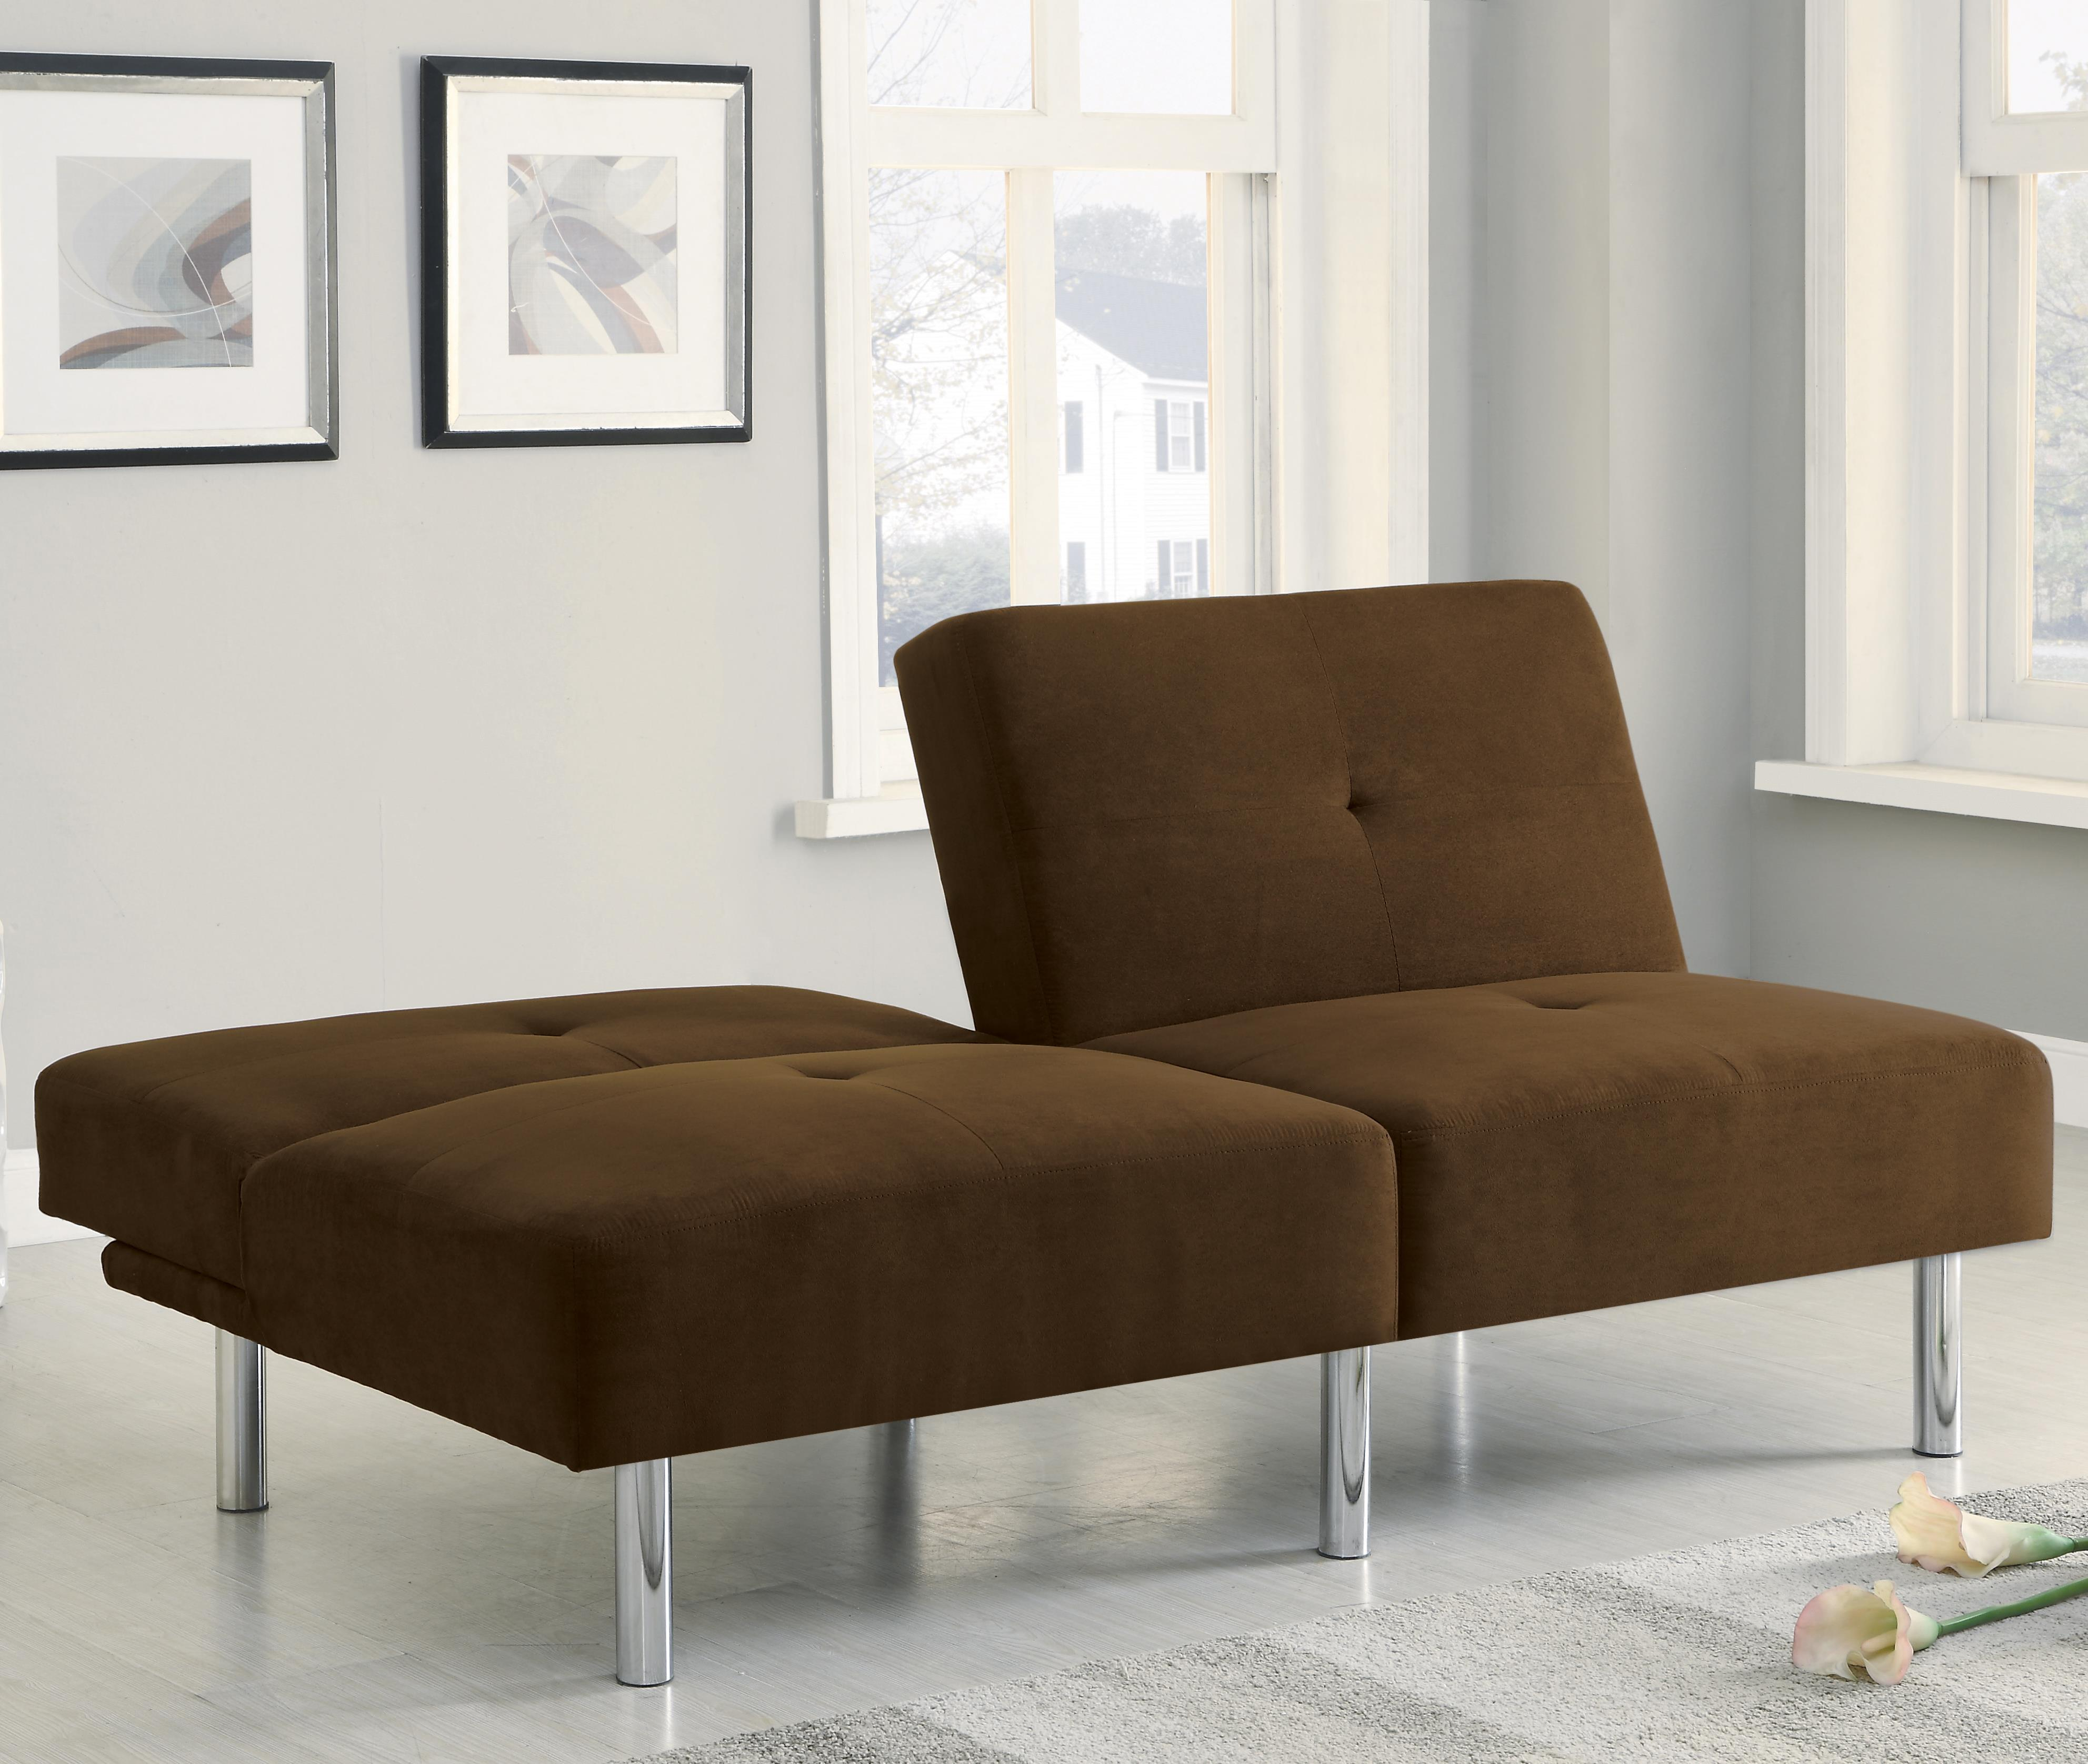 wonderful bedroom microfiber sofa couch grey furniture of sleeper set bed leather